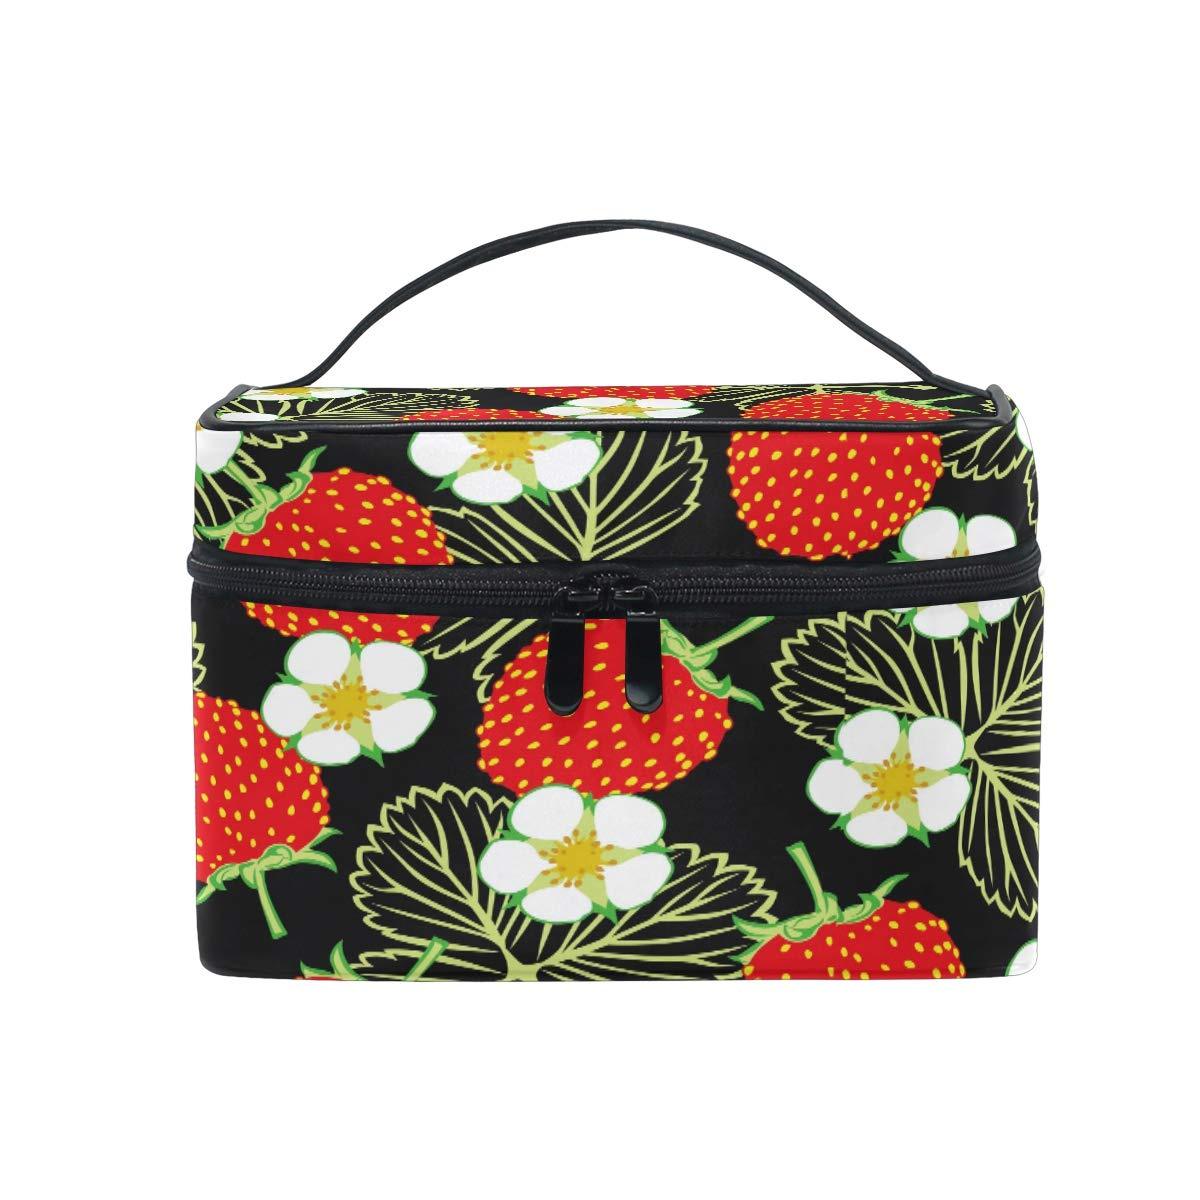 9e9cb7b40ad3 CPYang Travel Makeup Bag Strawberry Flower Leaves Portable Cosmetic Case  Organiser Toiletry Bag Pouch Makeup Train Case for Women Girls